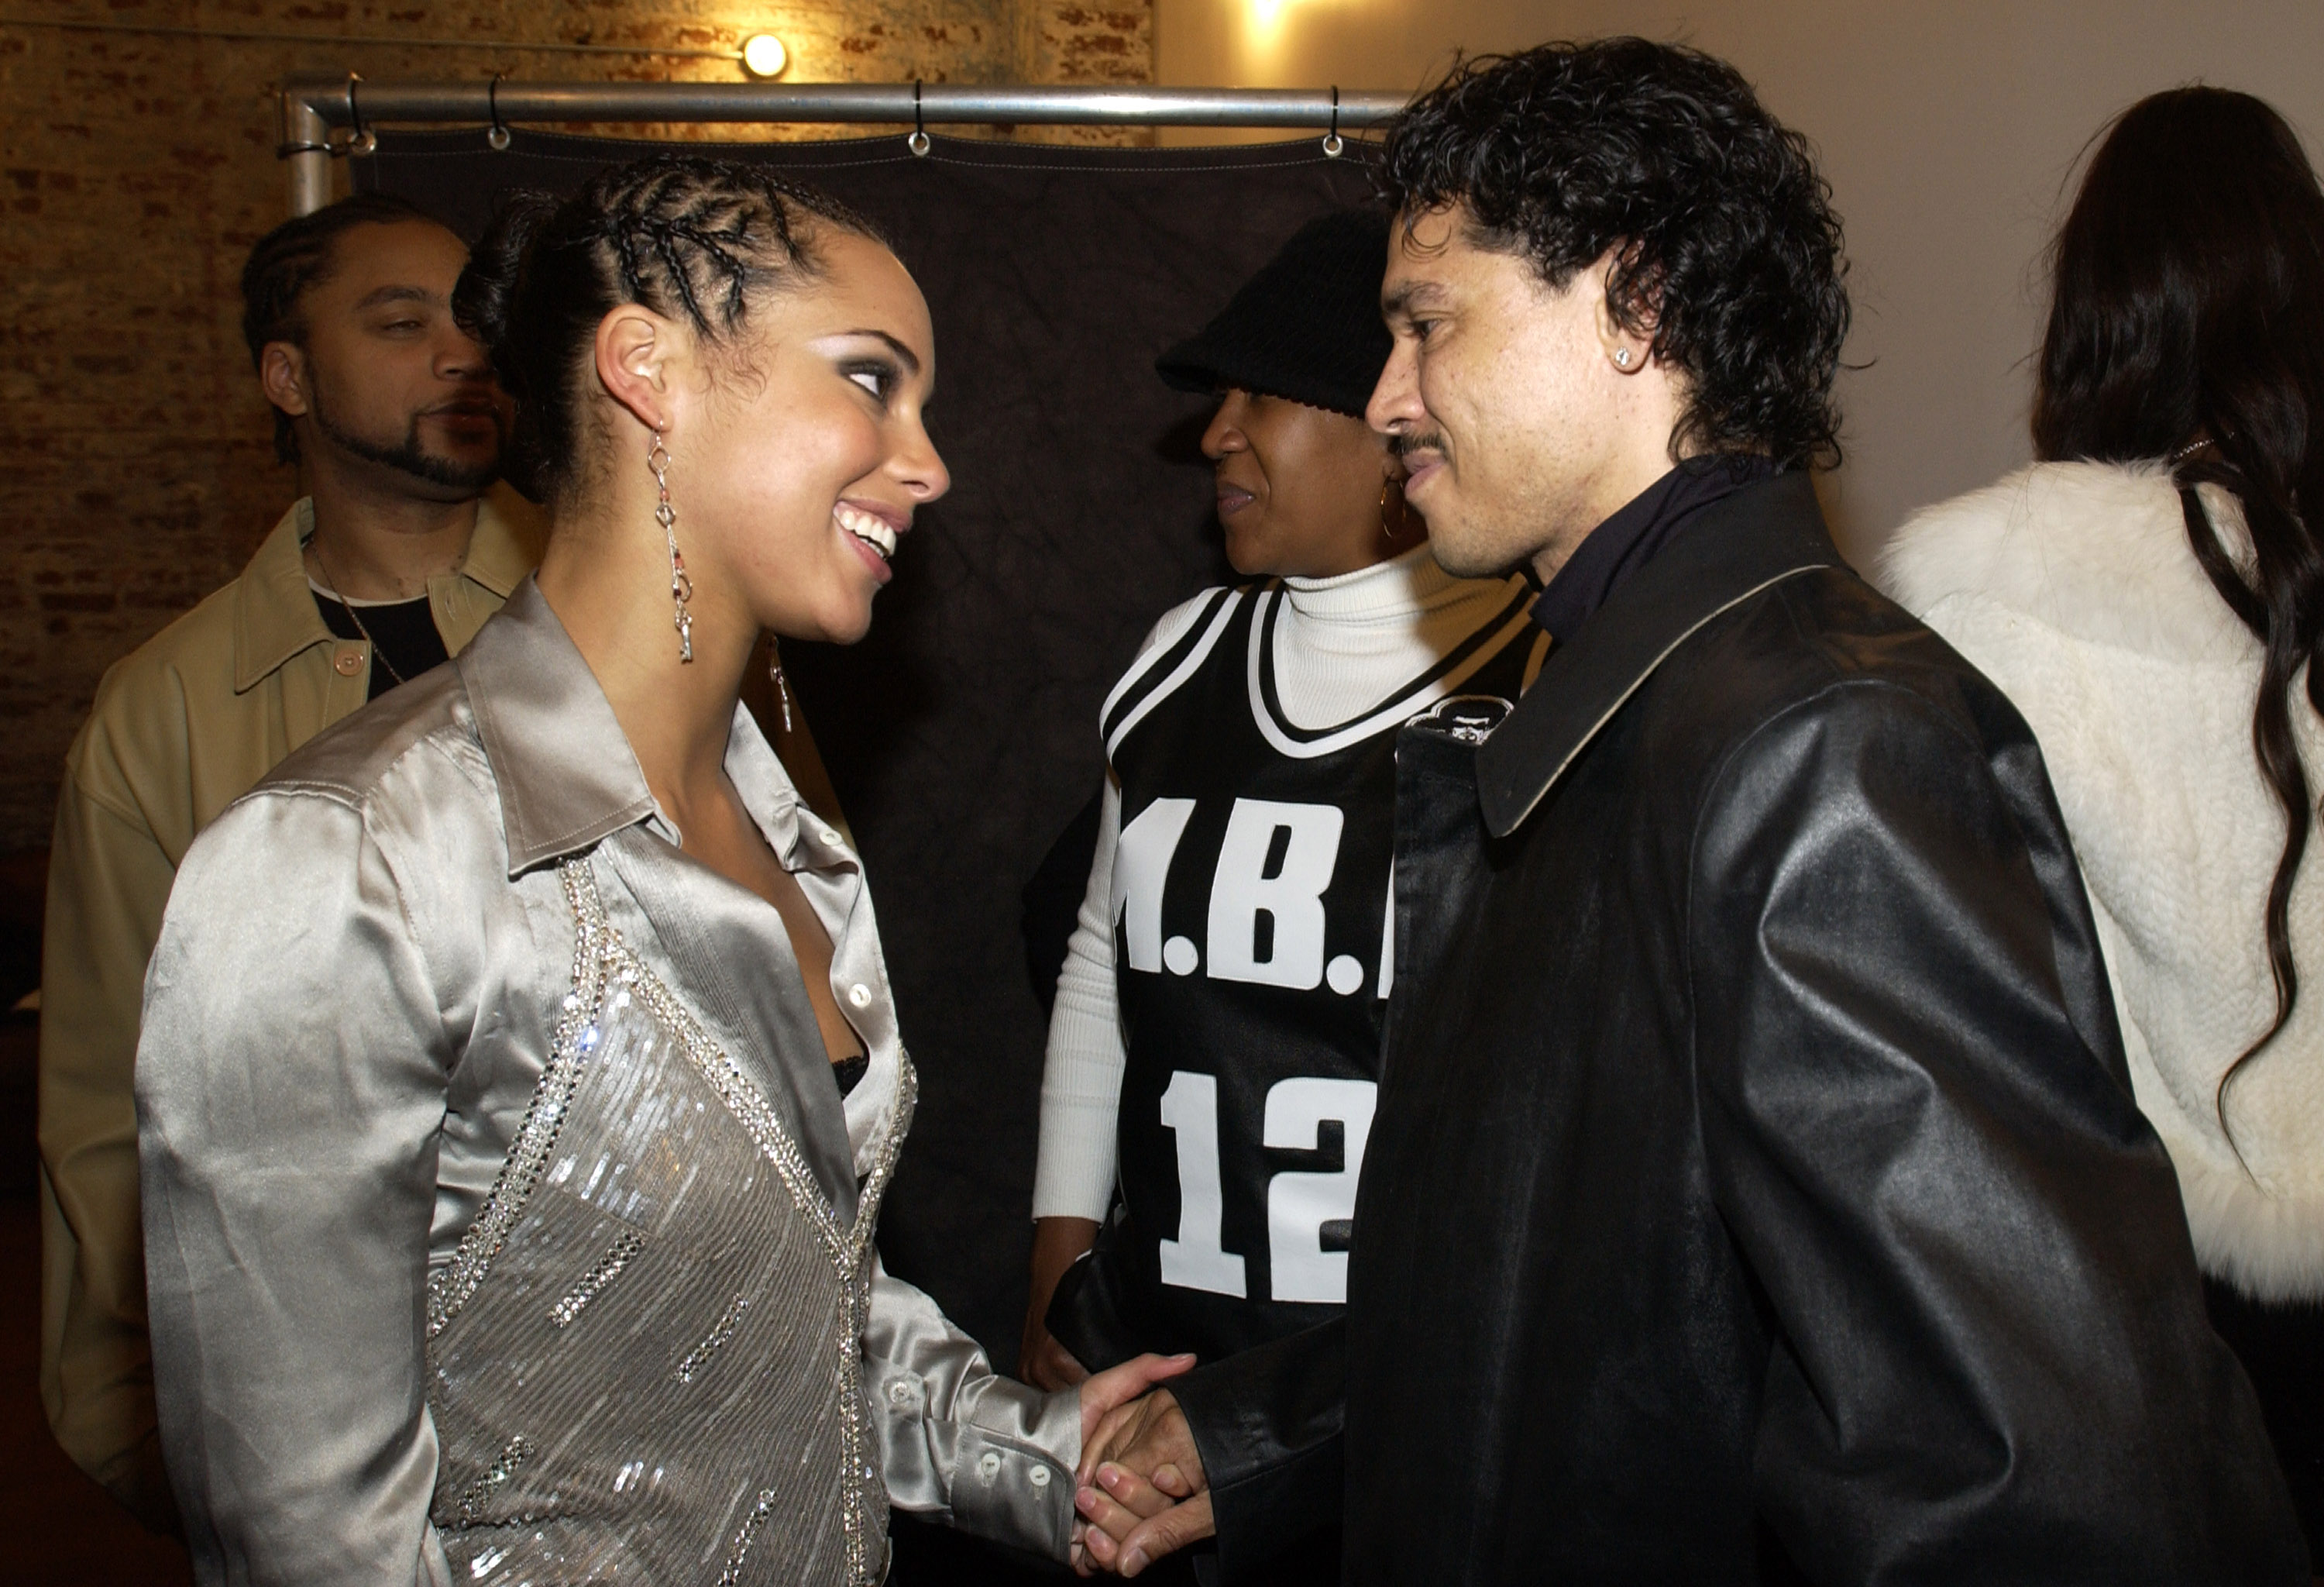 Alicia Keys Album Release Party at Industria in New York City, 2003